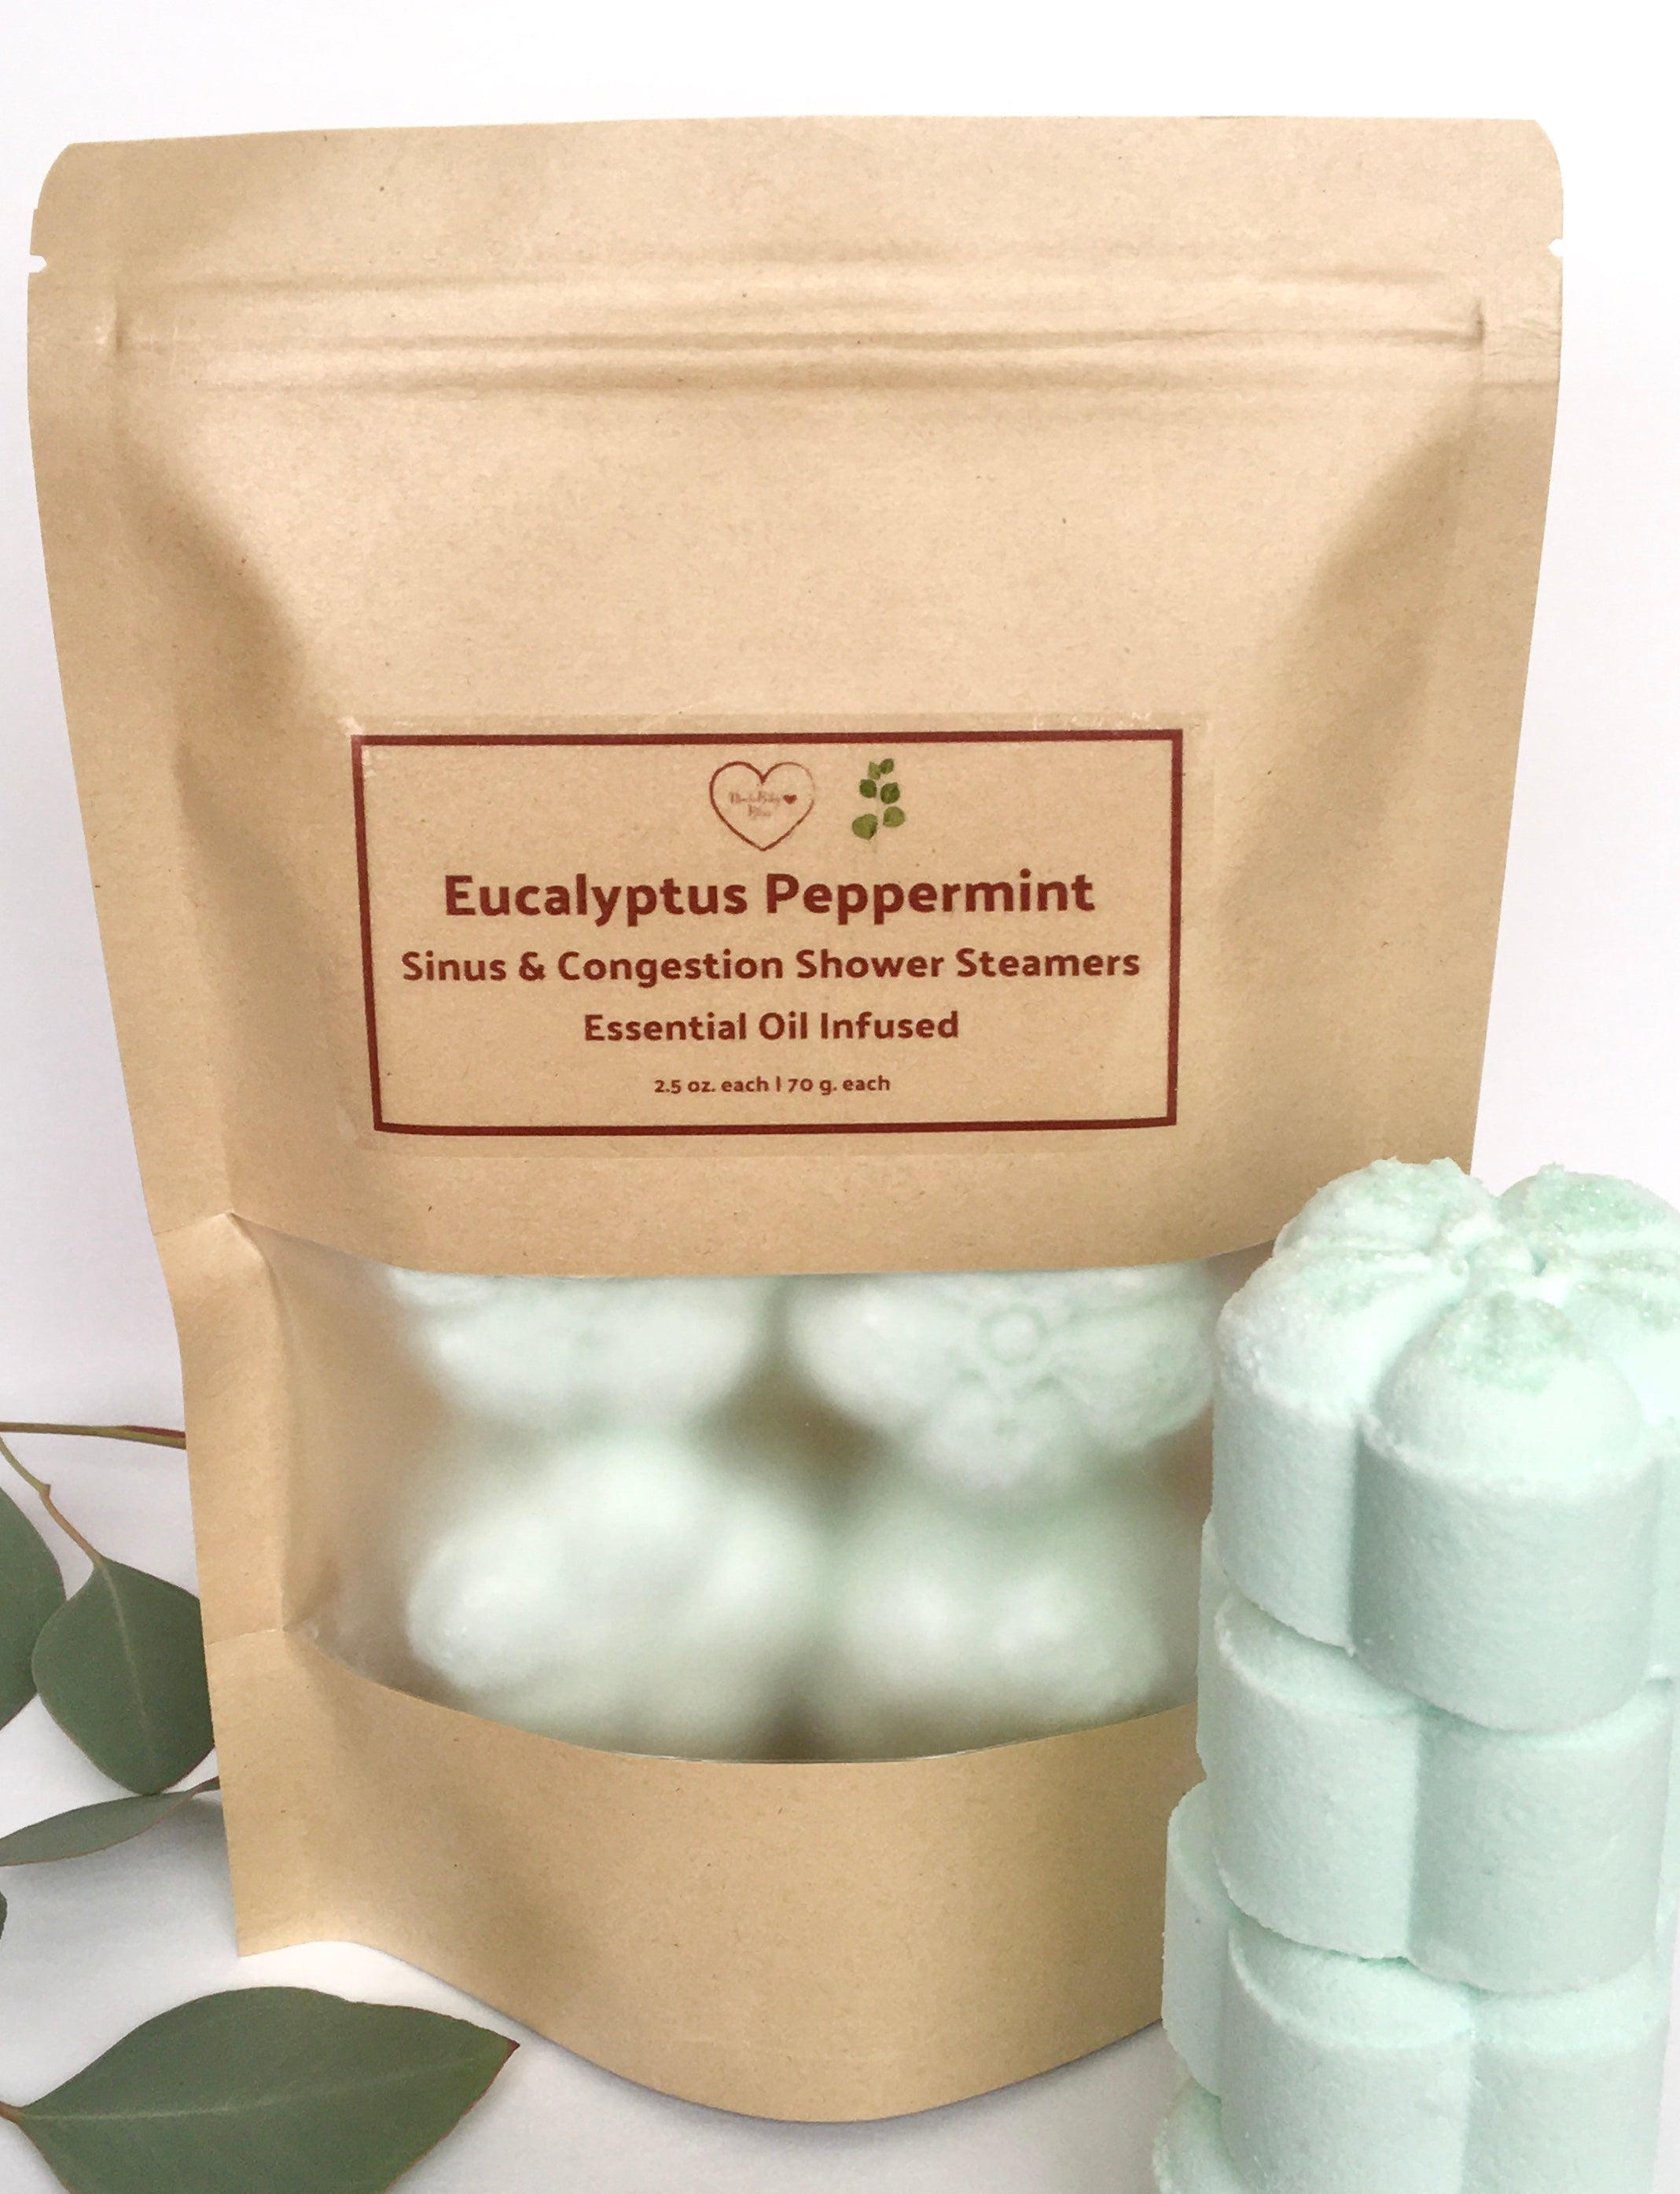 Eucalyptus Peppermint Shower Steamers | Sinus & Congestion - 4 pack |  8 pack